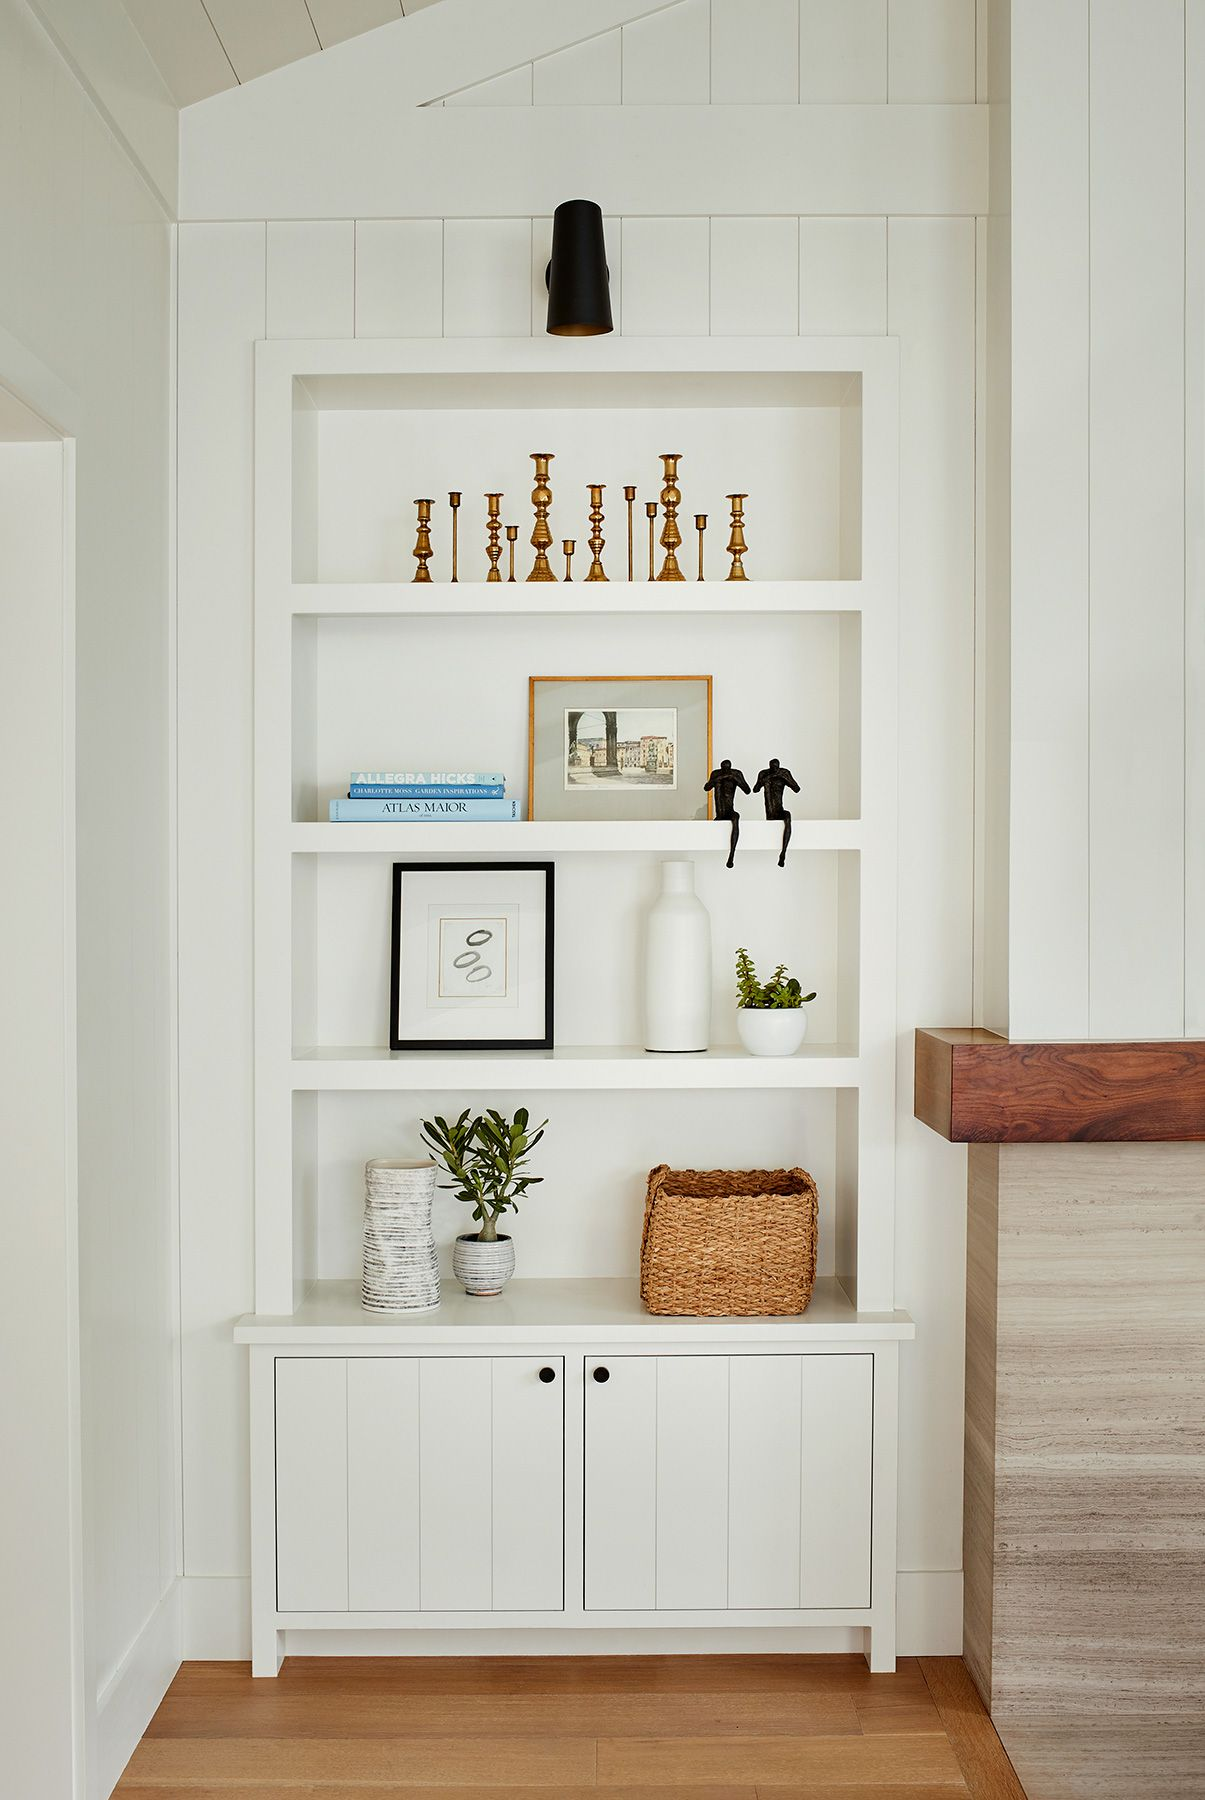 White Vertical Shiplap Walls Tongue And Groove Detail On The Cabinetry Matte Black Hardware And Sconces Over The Interior Home Design Decor Interior Design